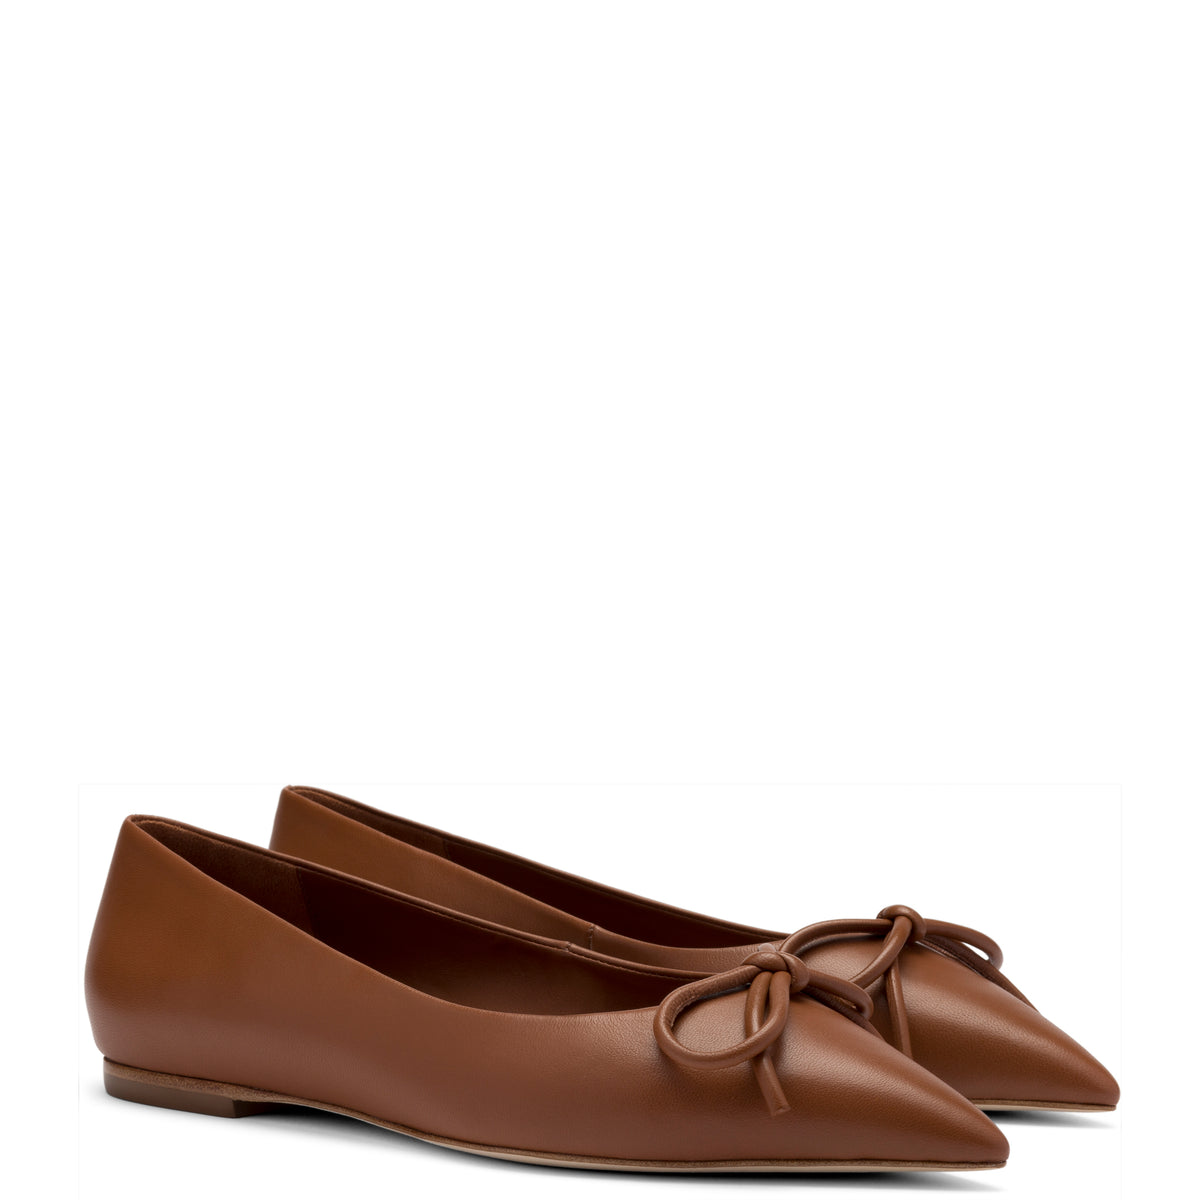 Lee Flat In Caramel Leather